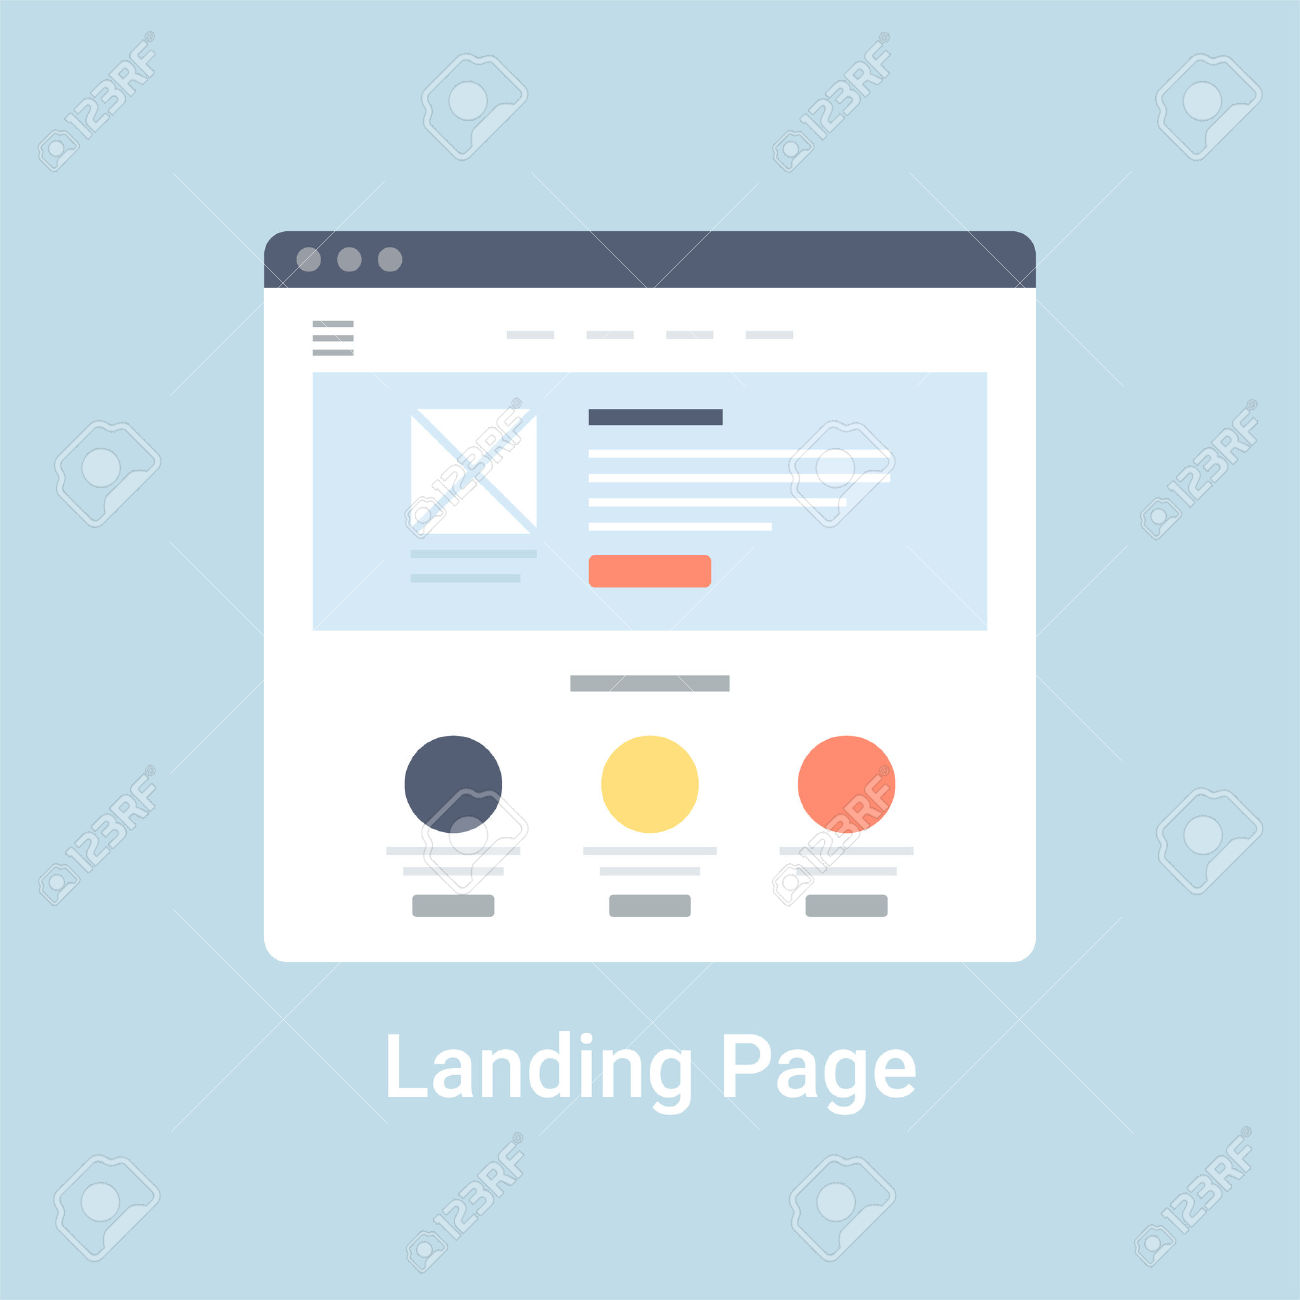 Landing Page Website Wireframe Interface Template. Flat Vector.